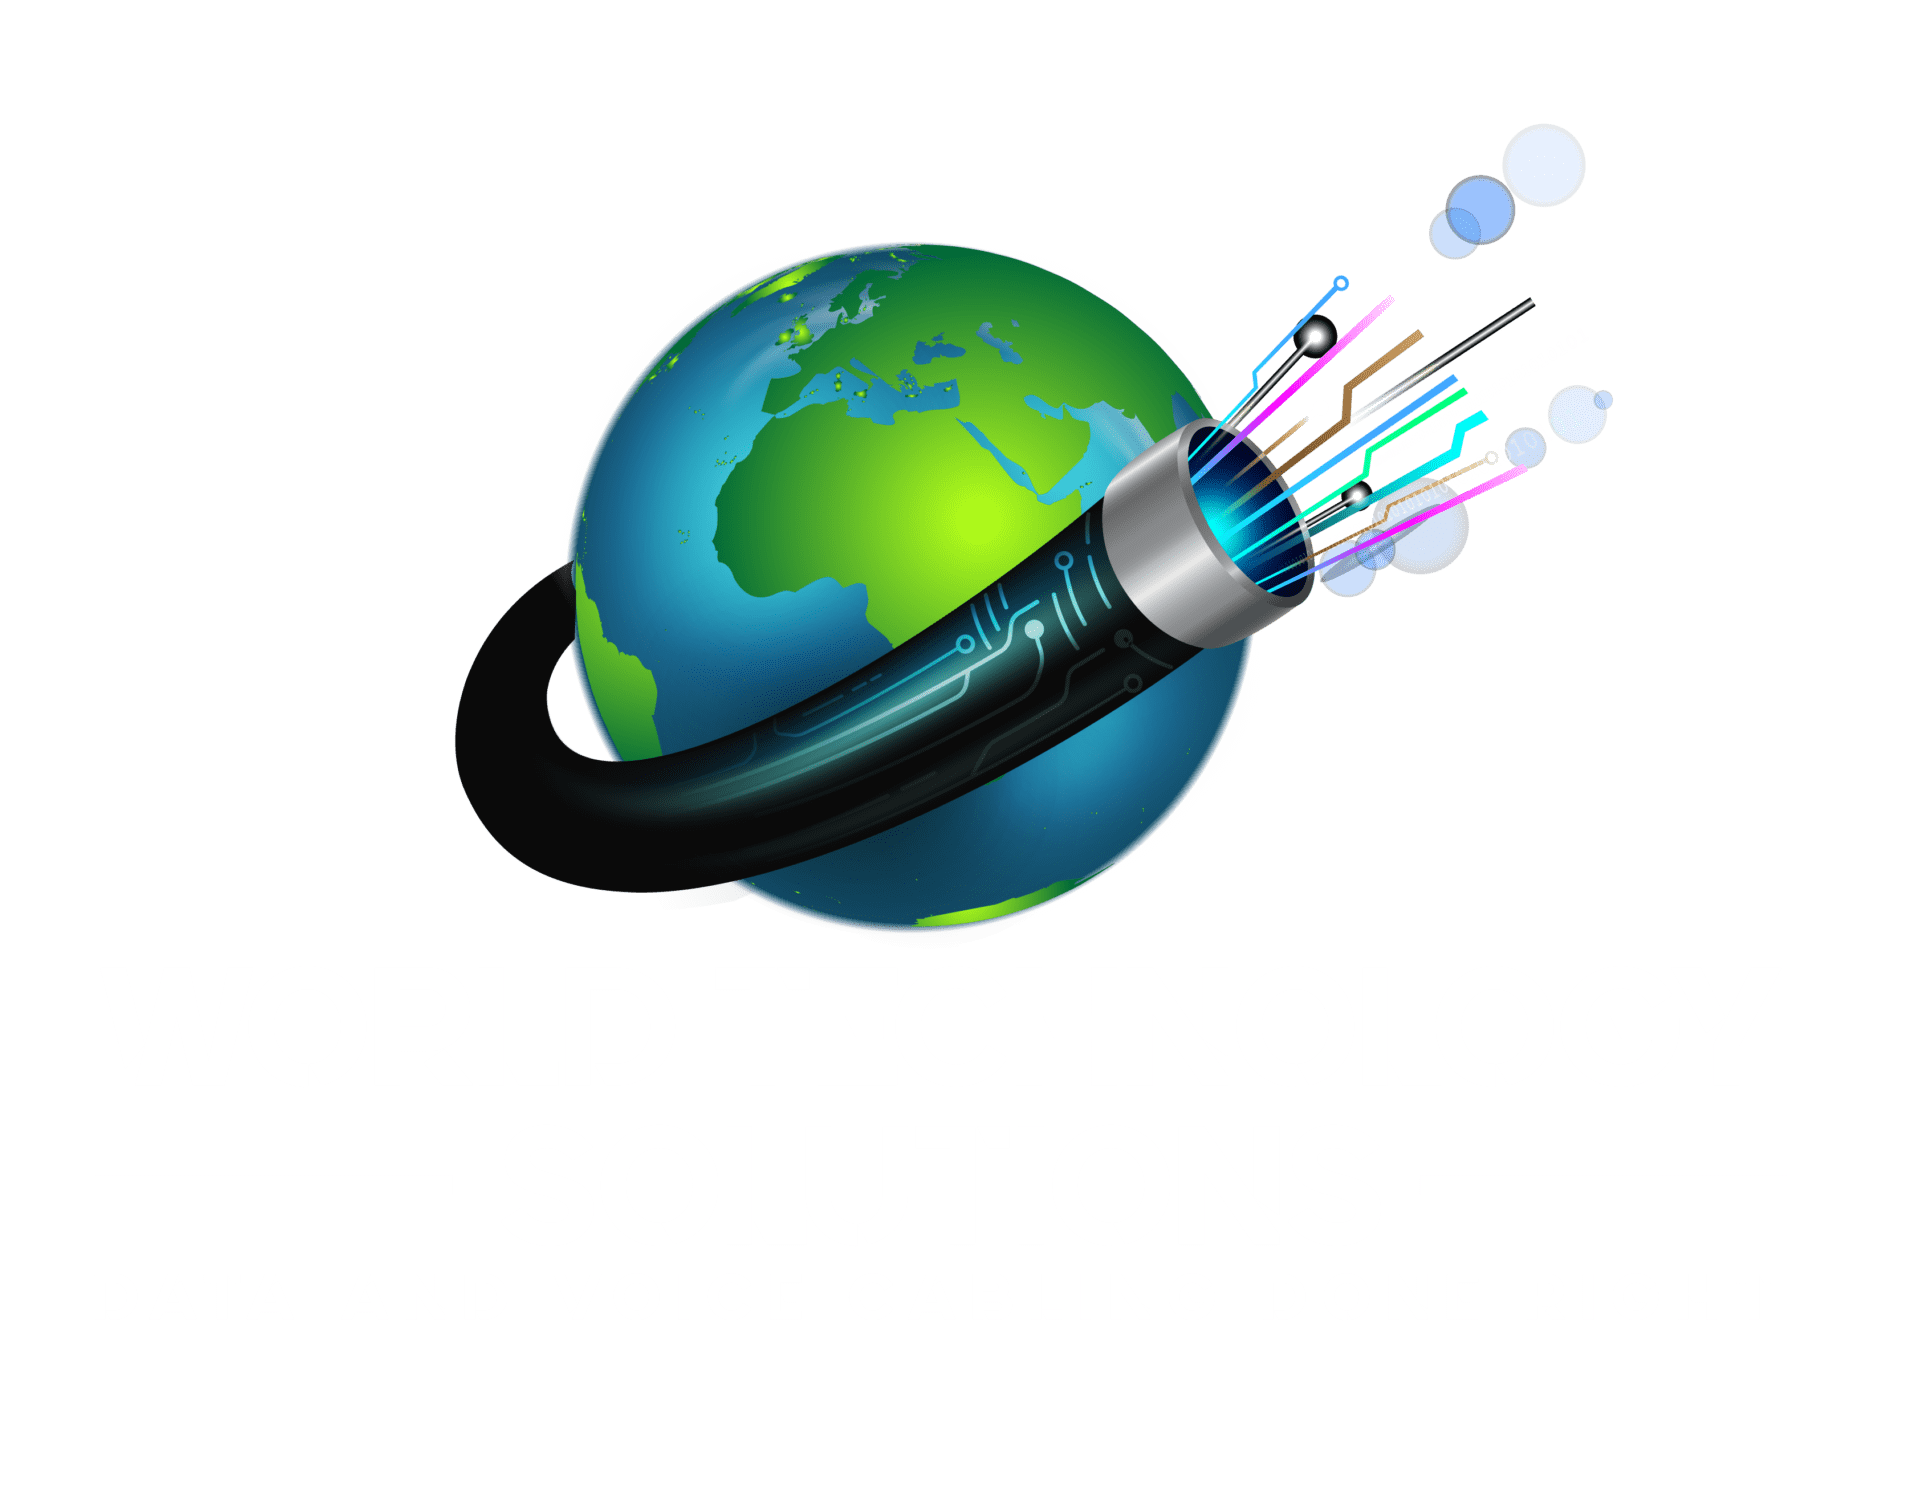 World Technology Solutions